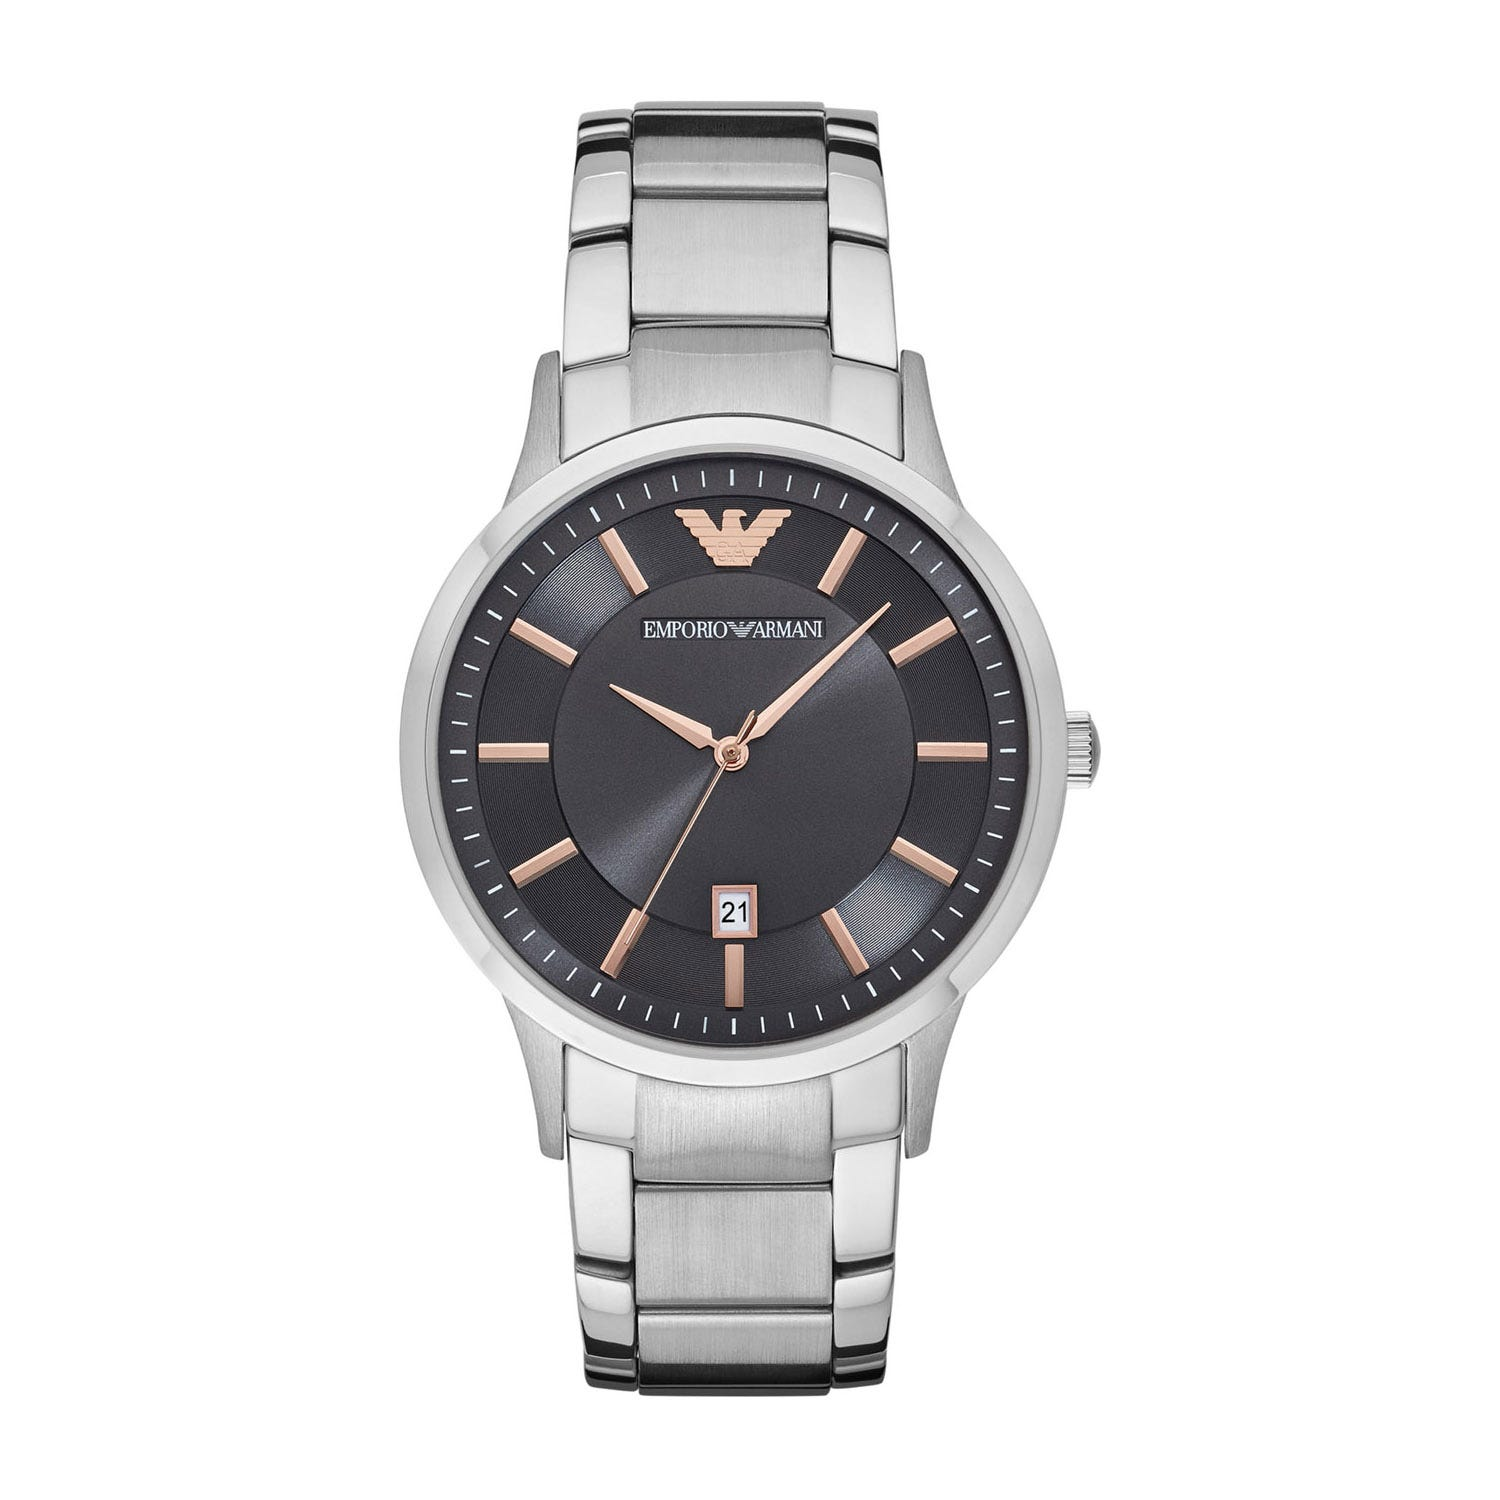 Emporio Armani Men's Grey Dial Stainless Steel Bracelet Watch